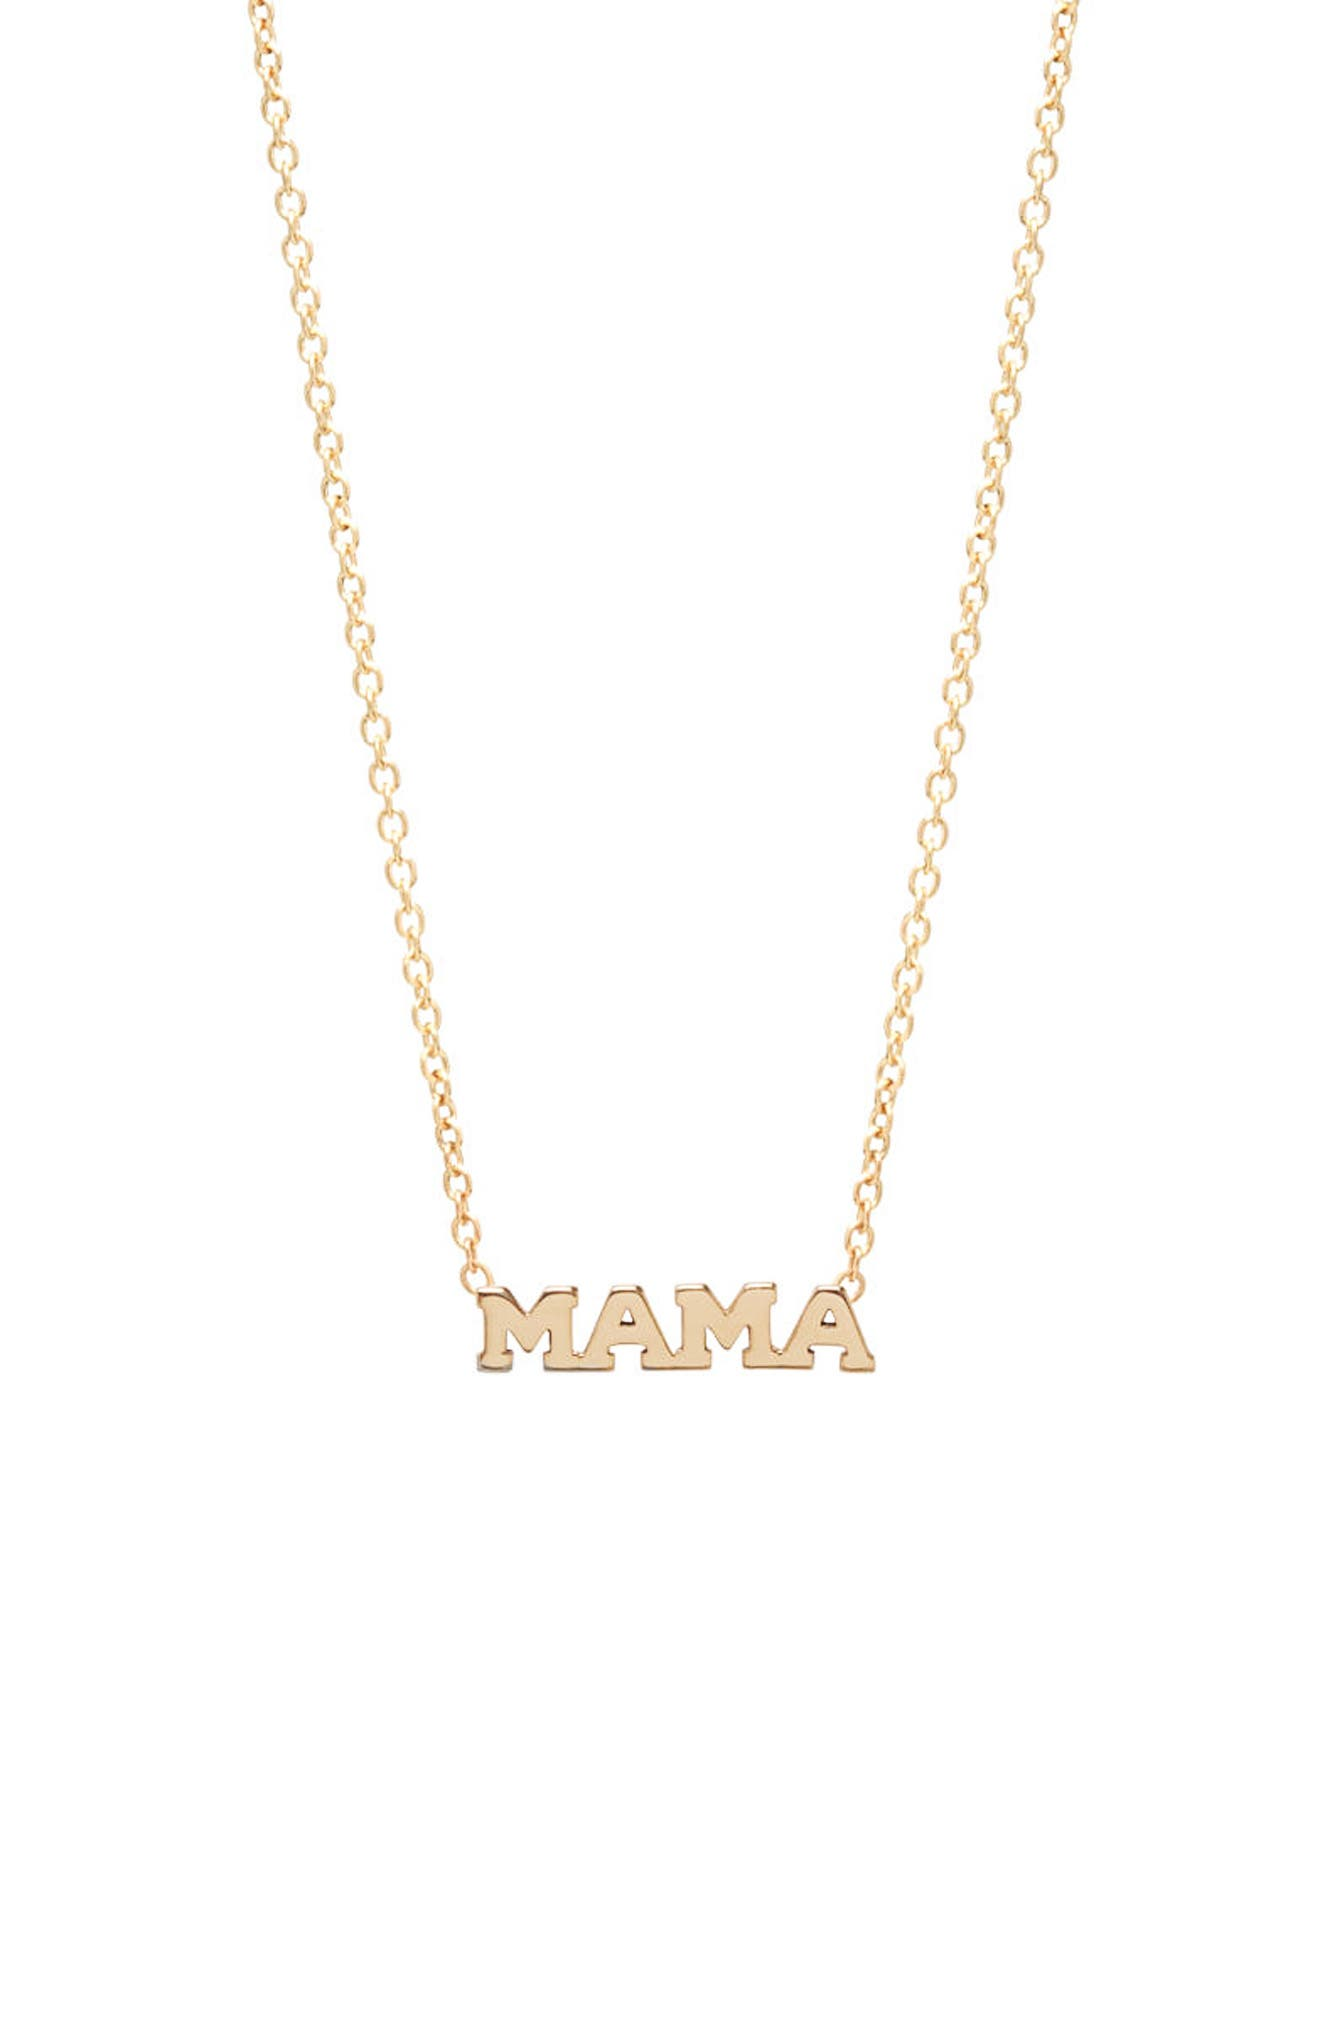 Itty Bitty Mama Pendant Necklace,                         Main,                         color, Yellow Gold